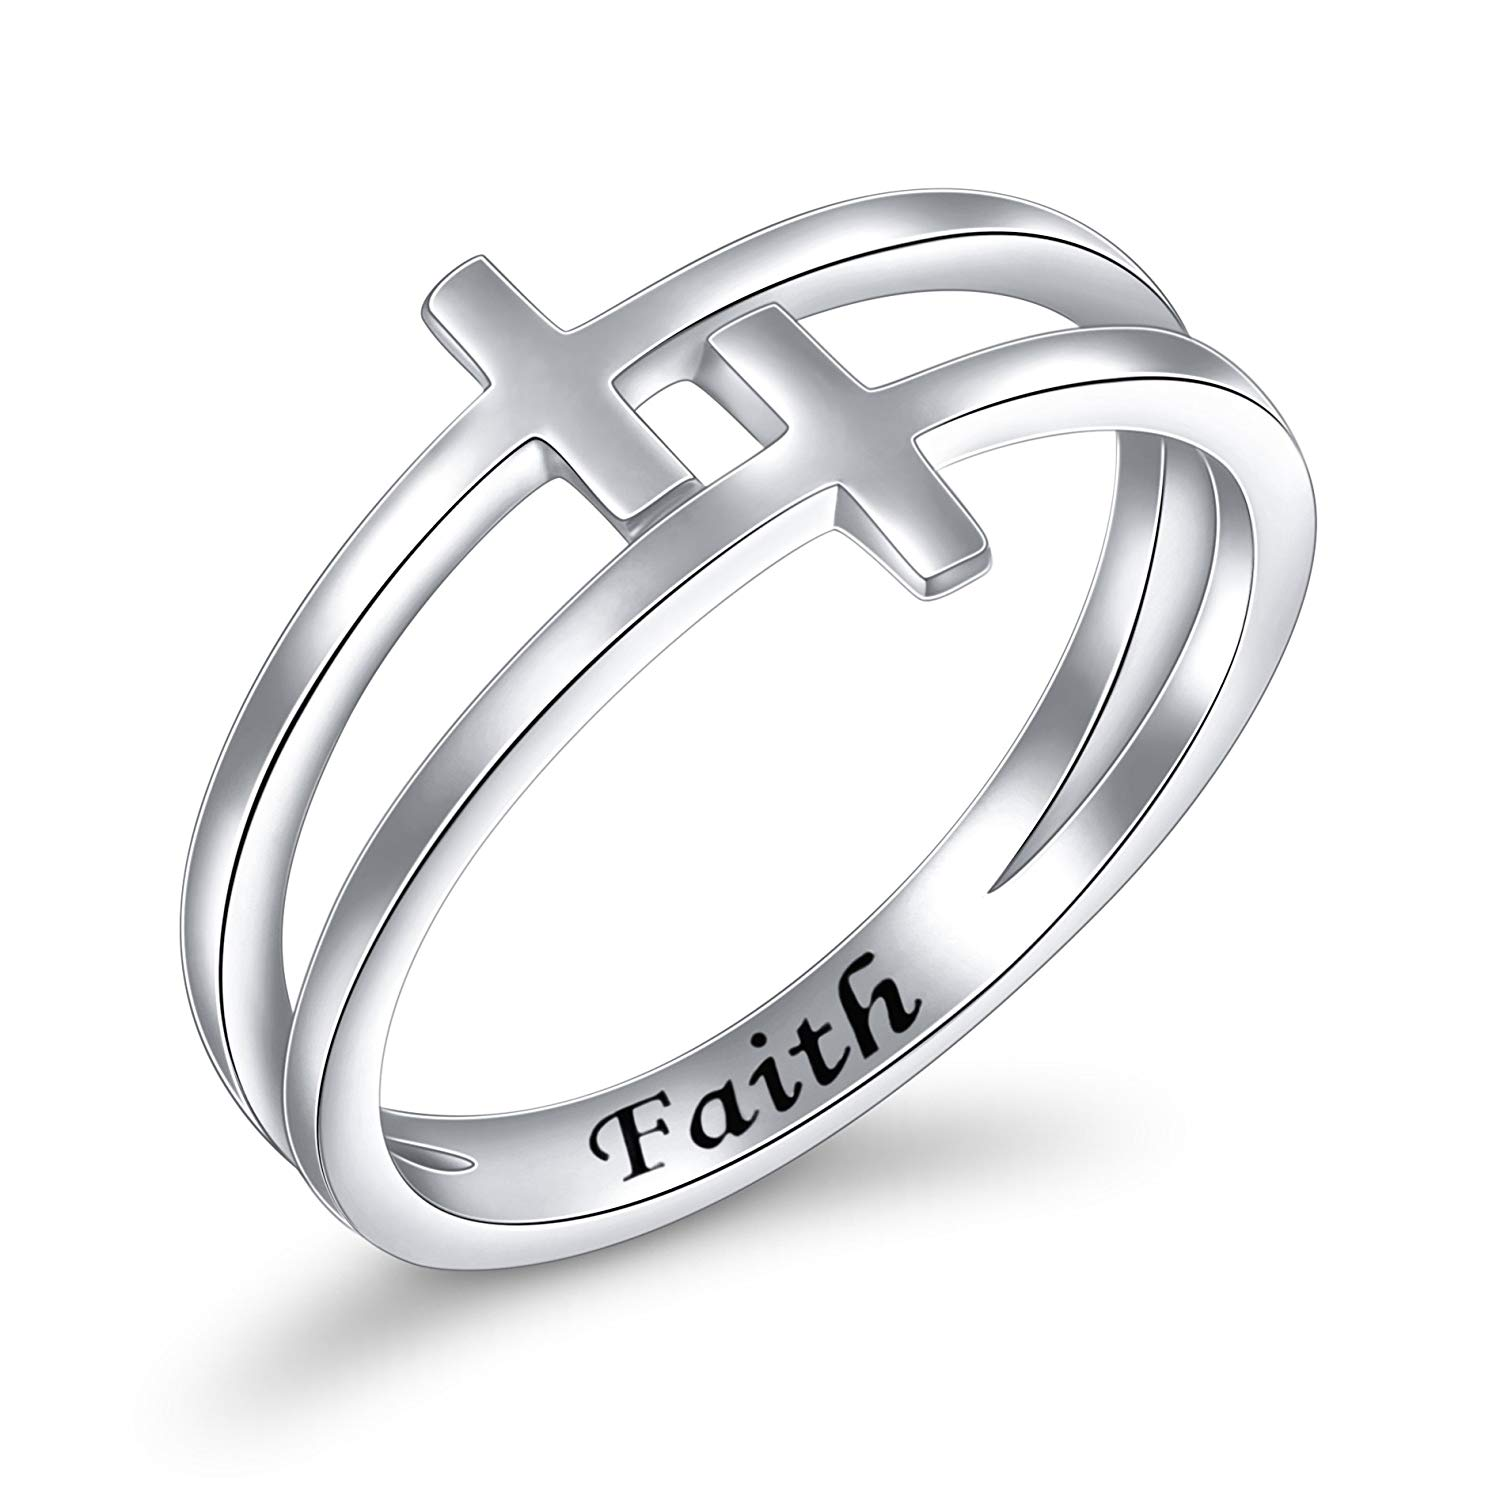 Inspirational Jewelry Sterling Silver Engraved Faith Double Cross Ring Christian Fashion Band Ring for Women Mother, Size 6-8